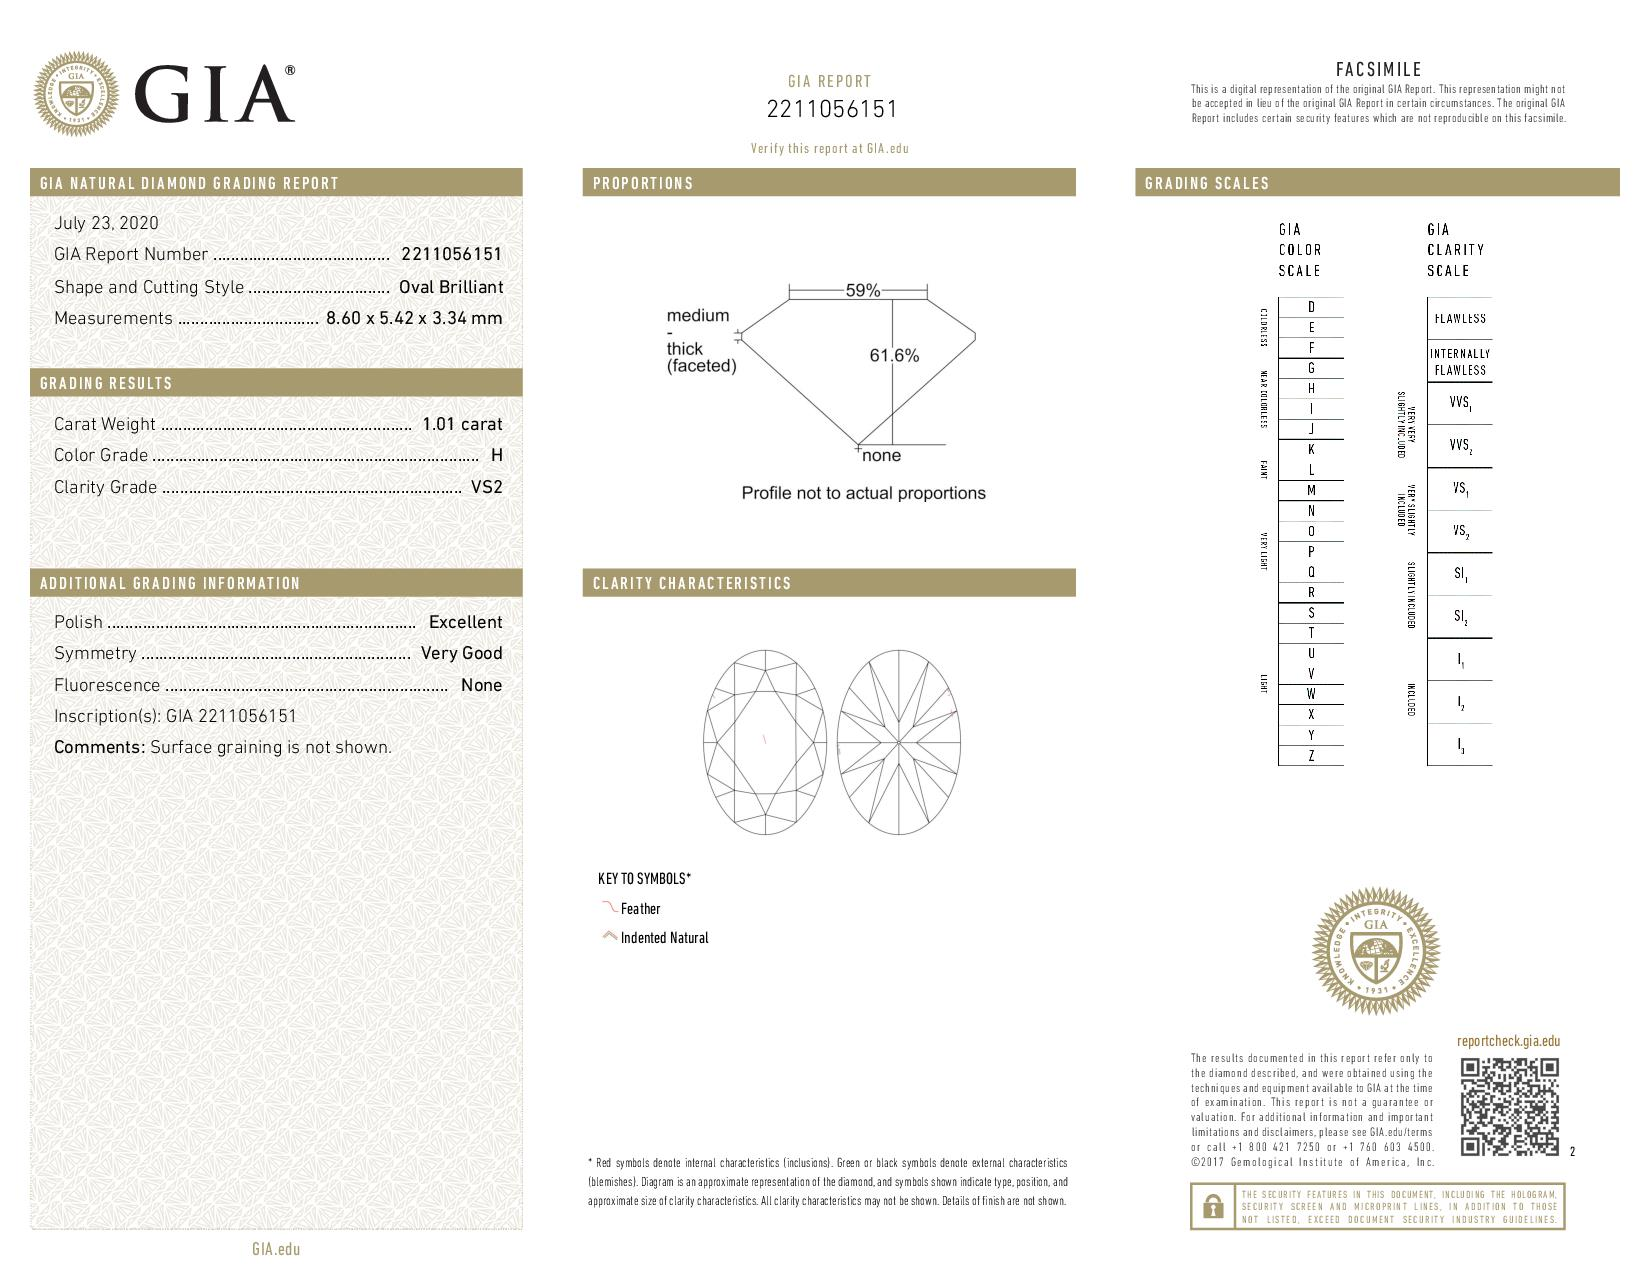 This is a 1.01 carat oval shape, H color, VS2 clarity natural diamond accompanied by a GIA grading report.